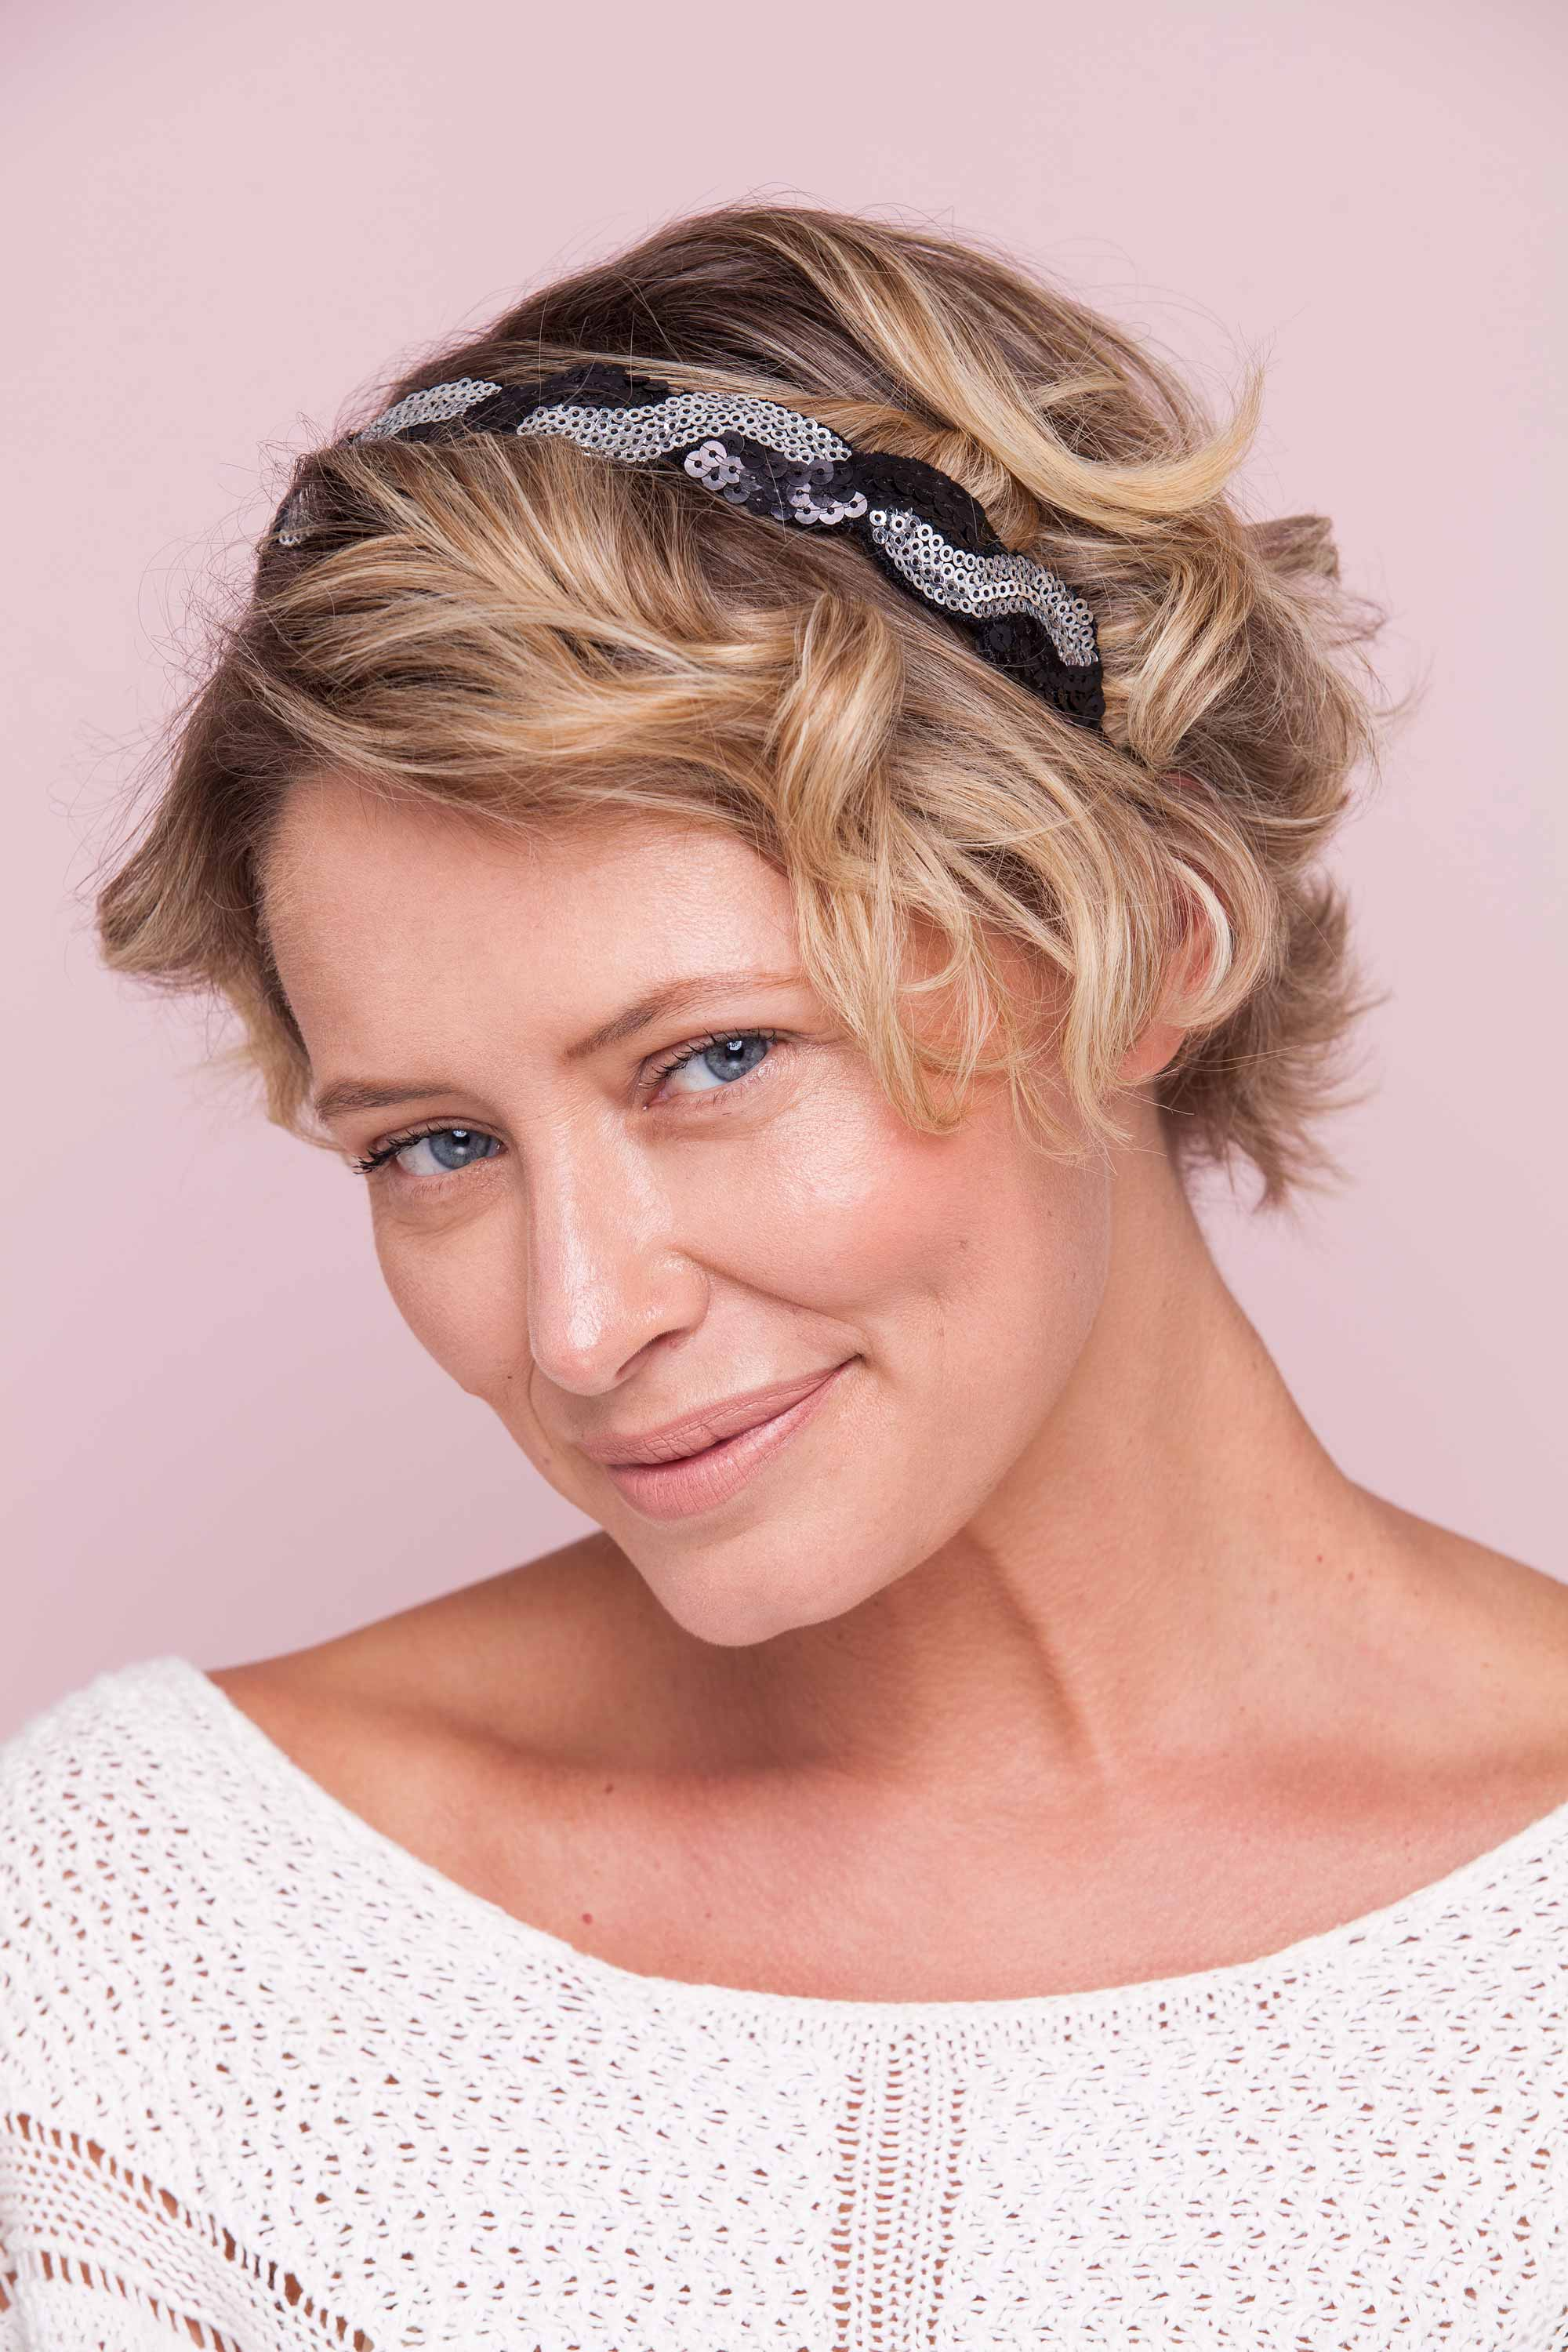 Flat Iron Hairstyles: 8 Looks to Try This Holiday Season